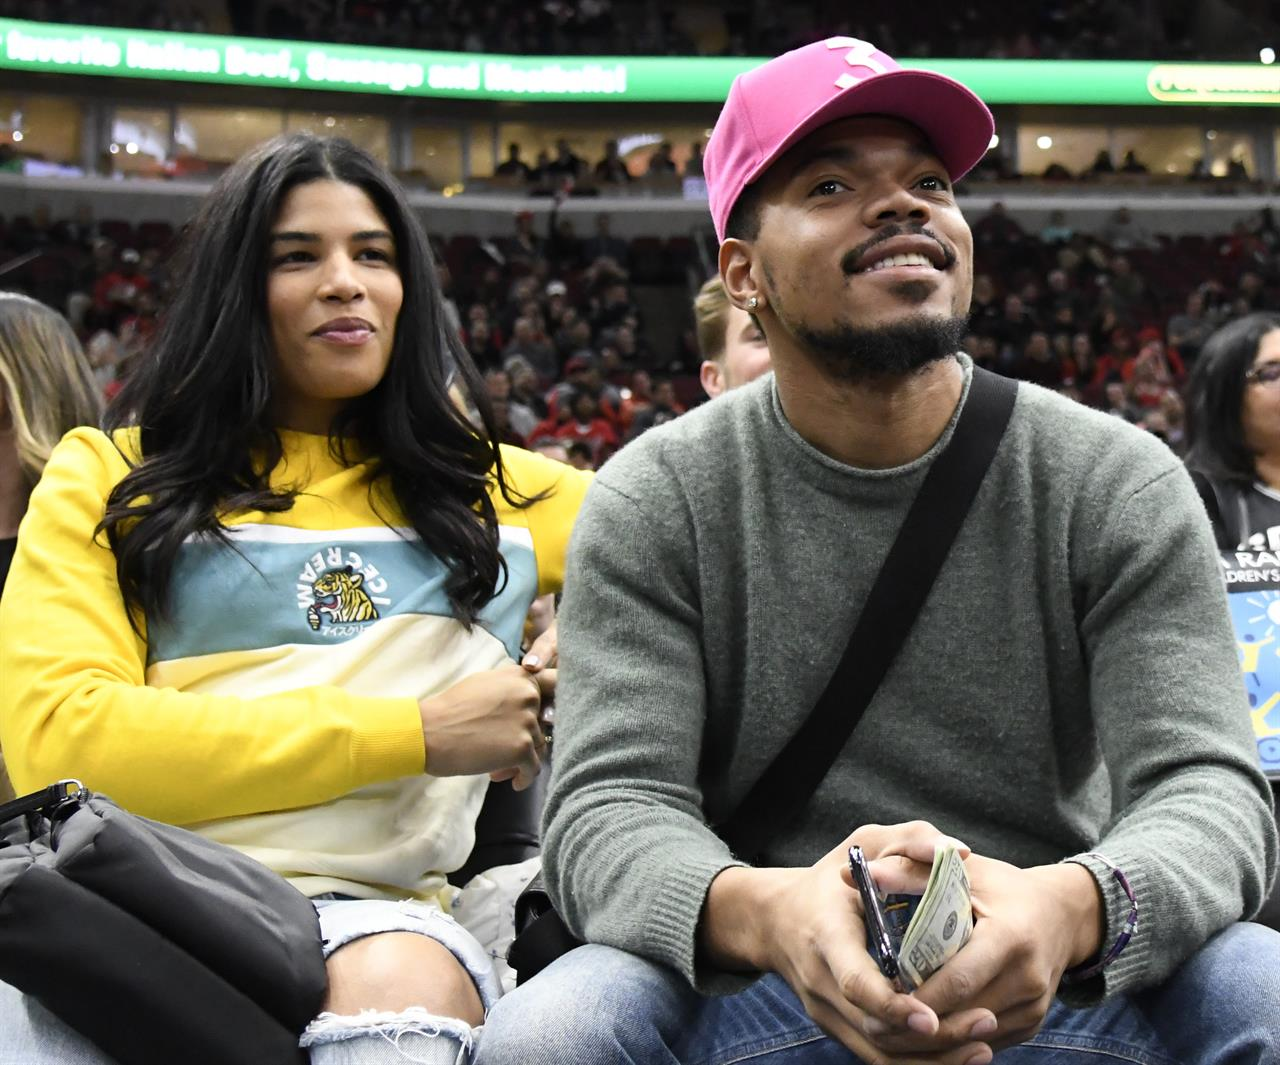 Chance the Rapper marries longtime girlfriend | KDOW-AM